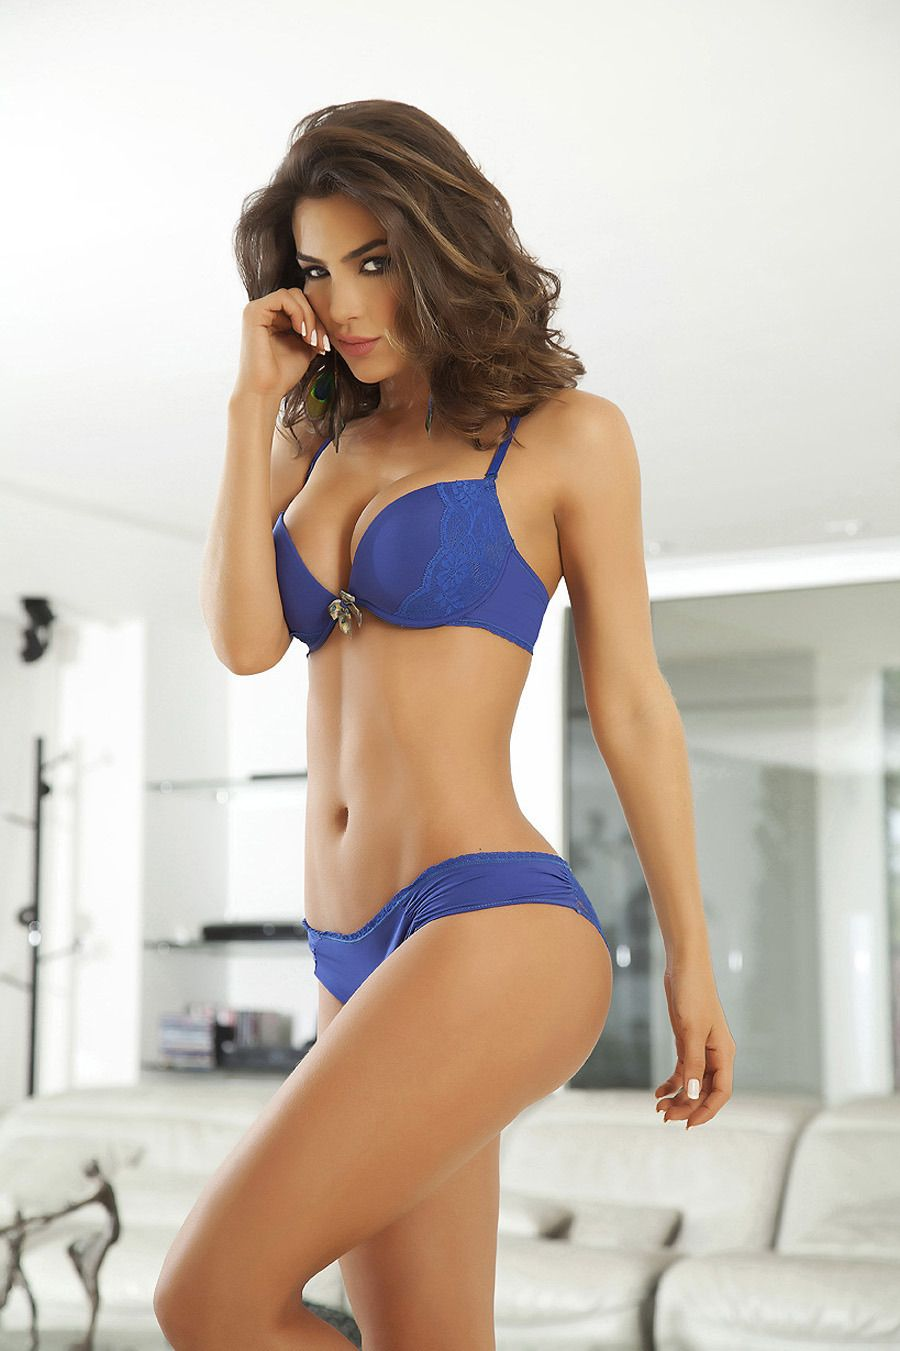 Latin women in lingerie